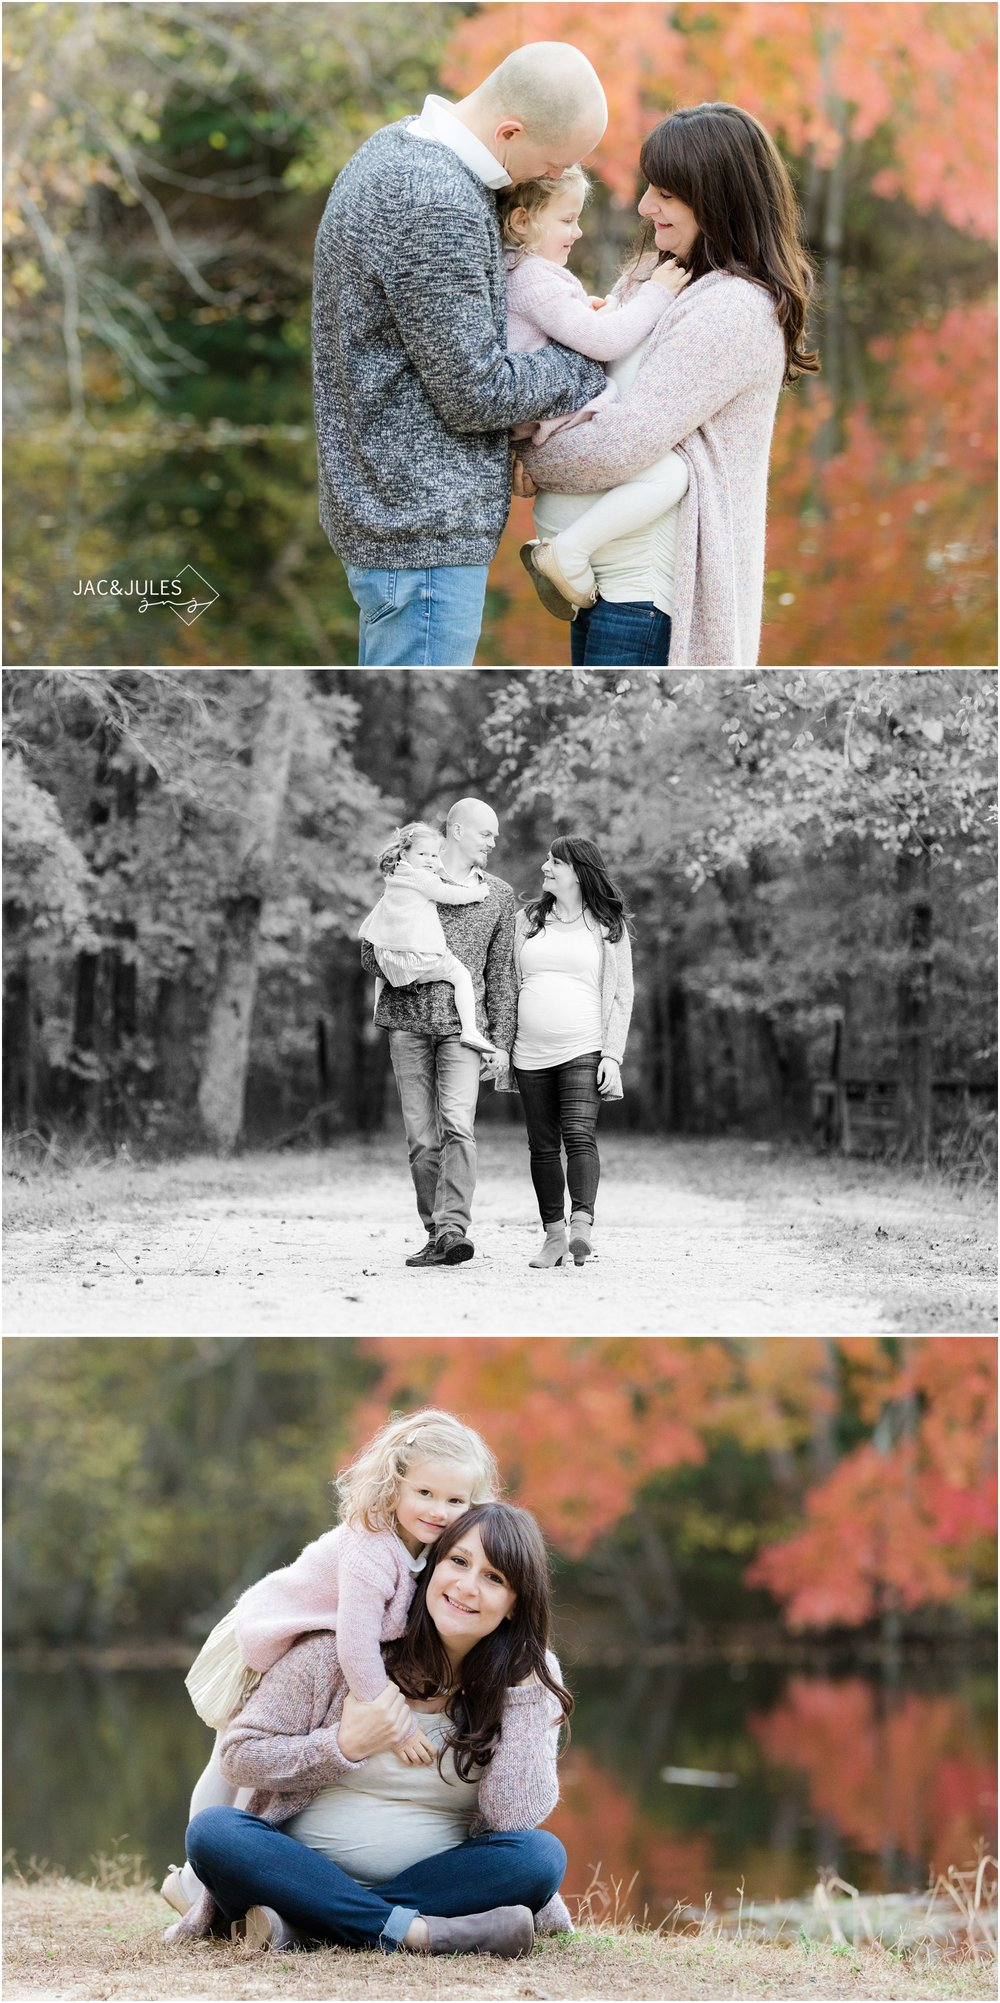 playful maternity photos by the lake at allaire state park in the fall.